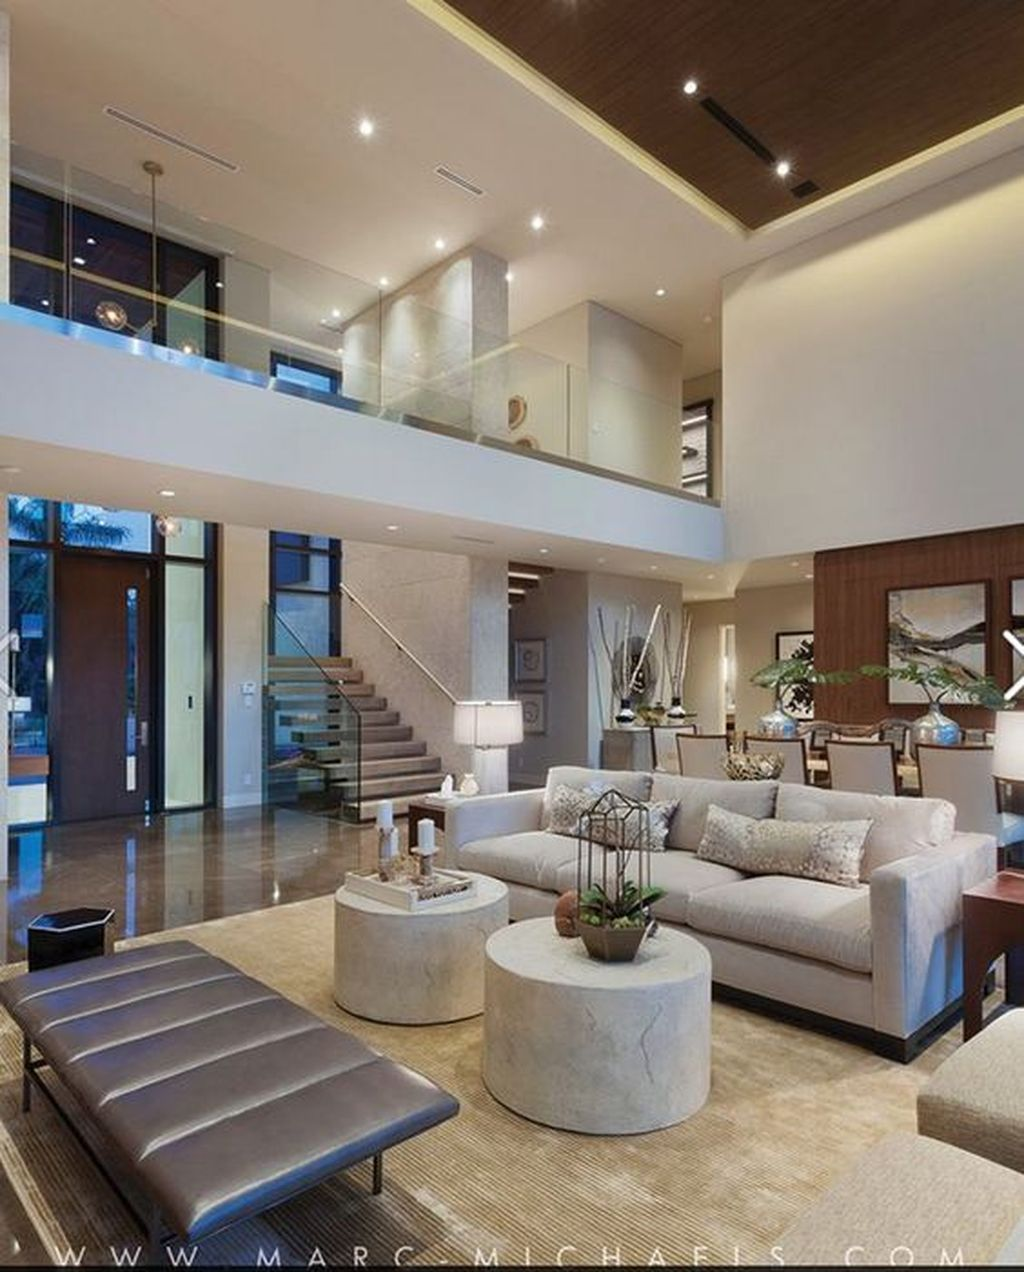 50 Stunning Modern House Design Interior Ideas Modern House